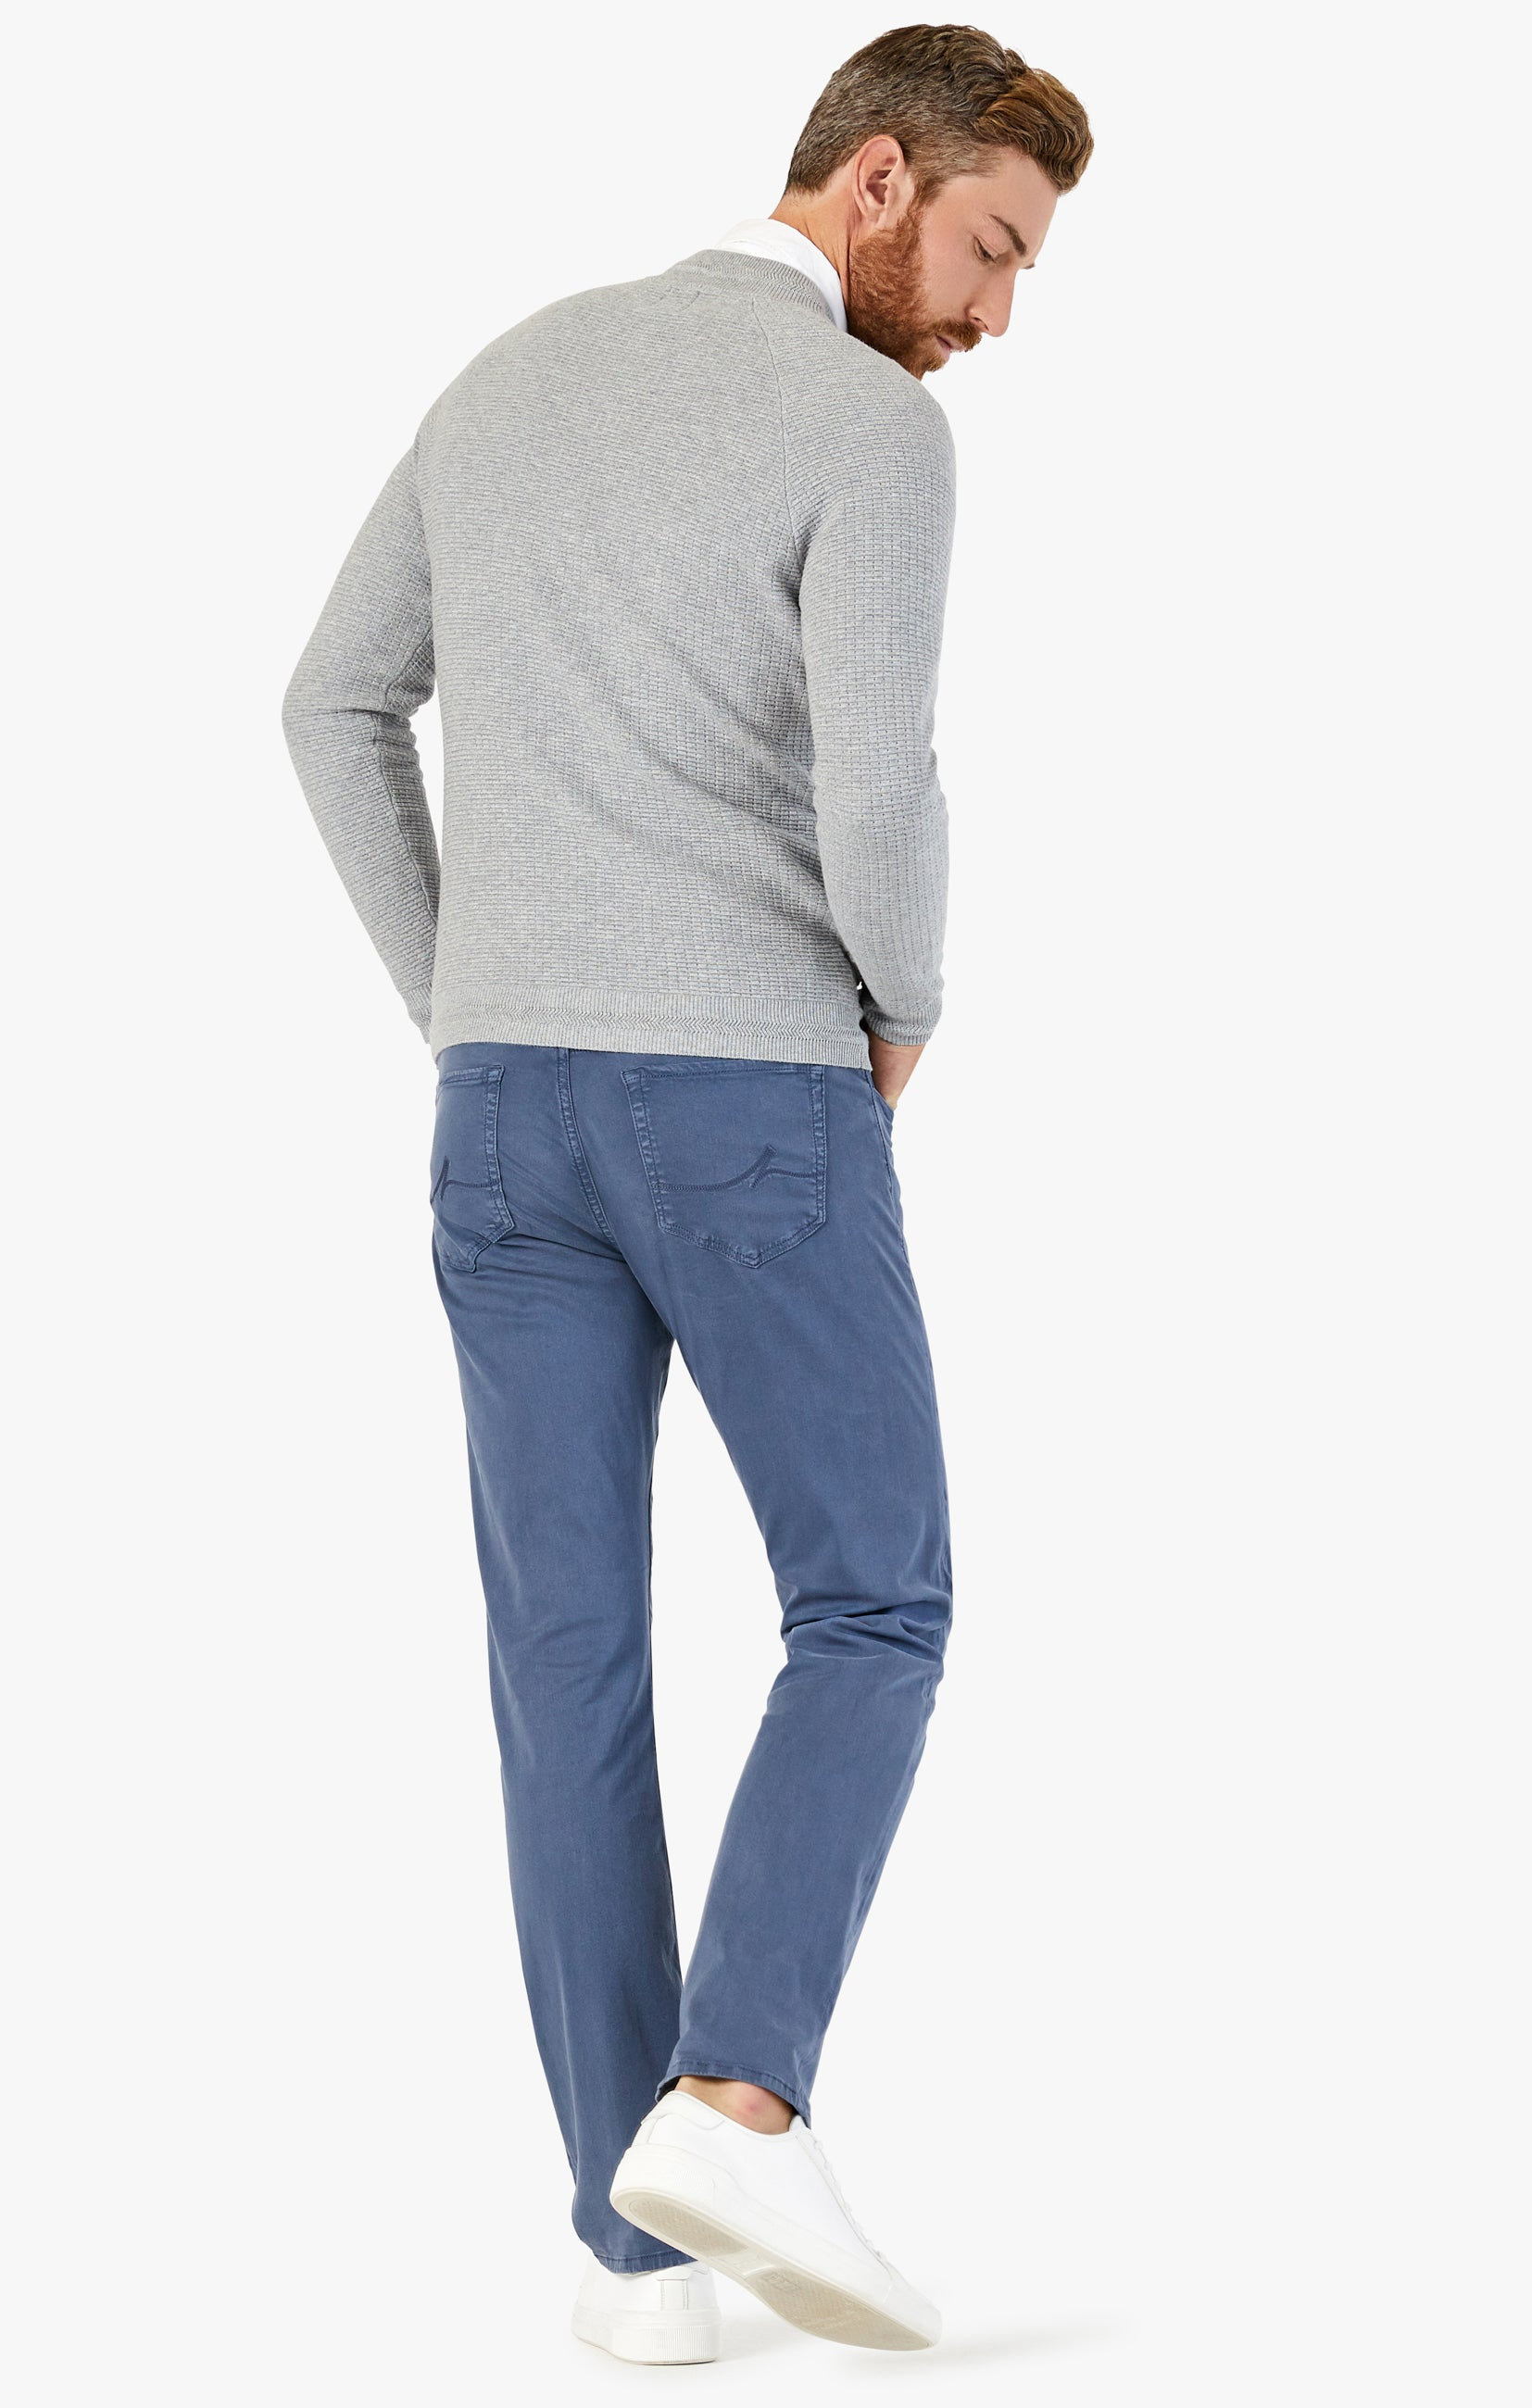 Charisma Relaxed Straight Pants In Vintage Indigo Twill Image 3